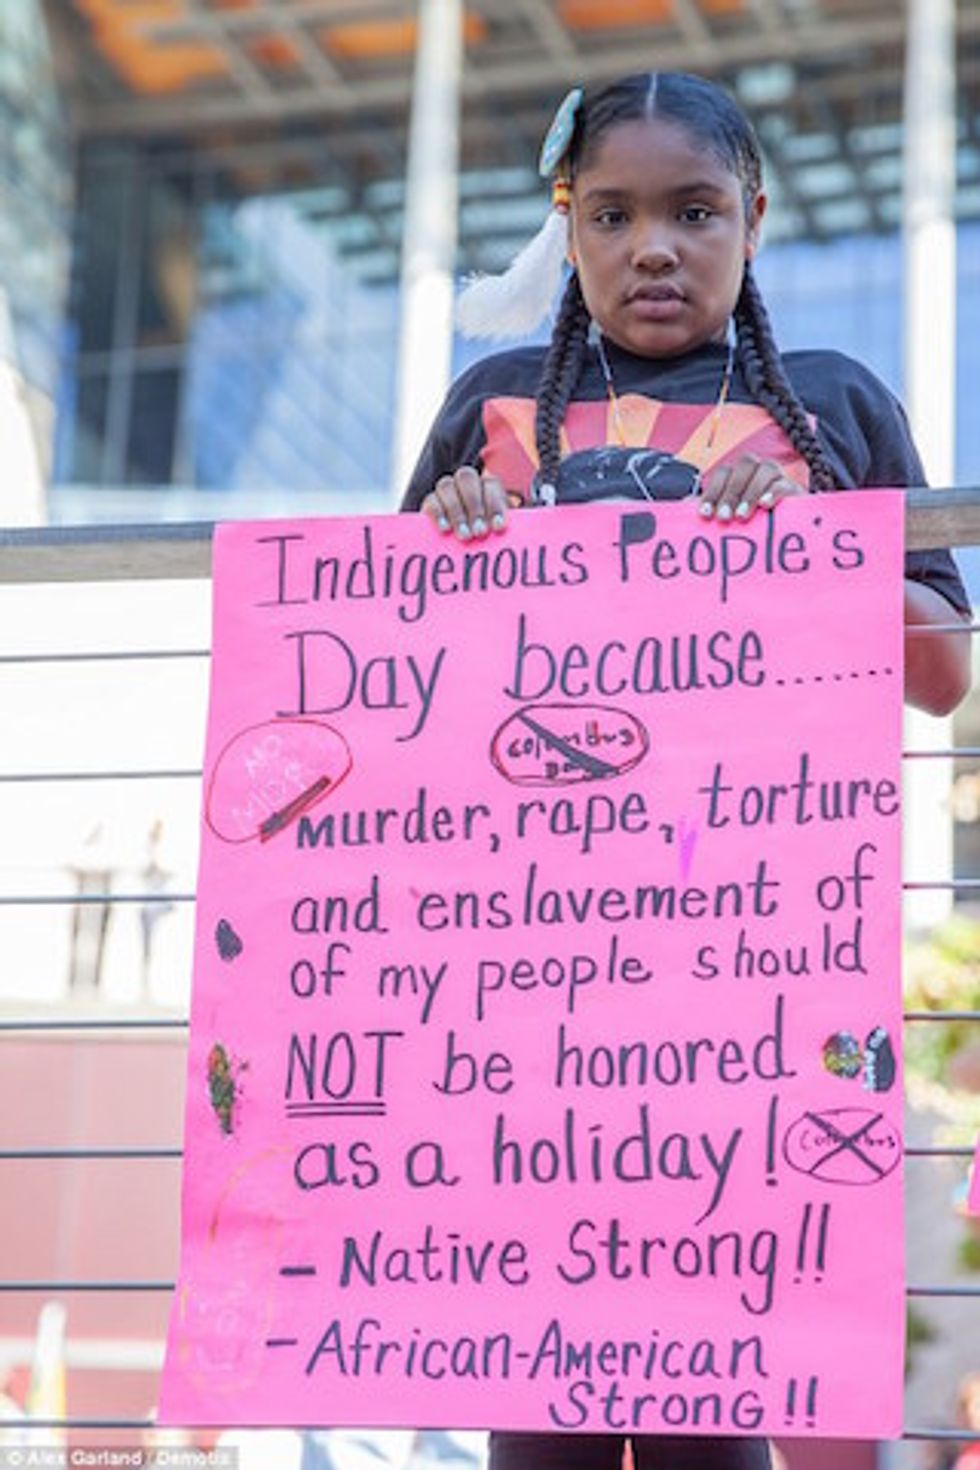 Forget Columbus Day and Check Out #IndigenousPeoplesDay Instead